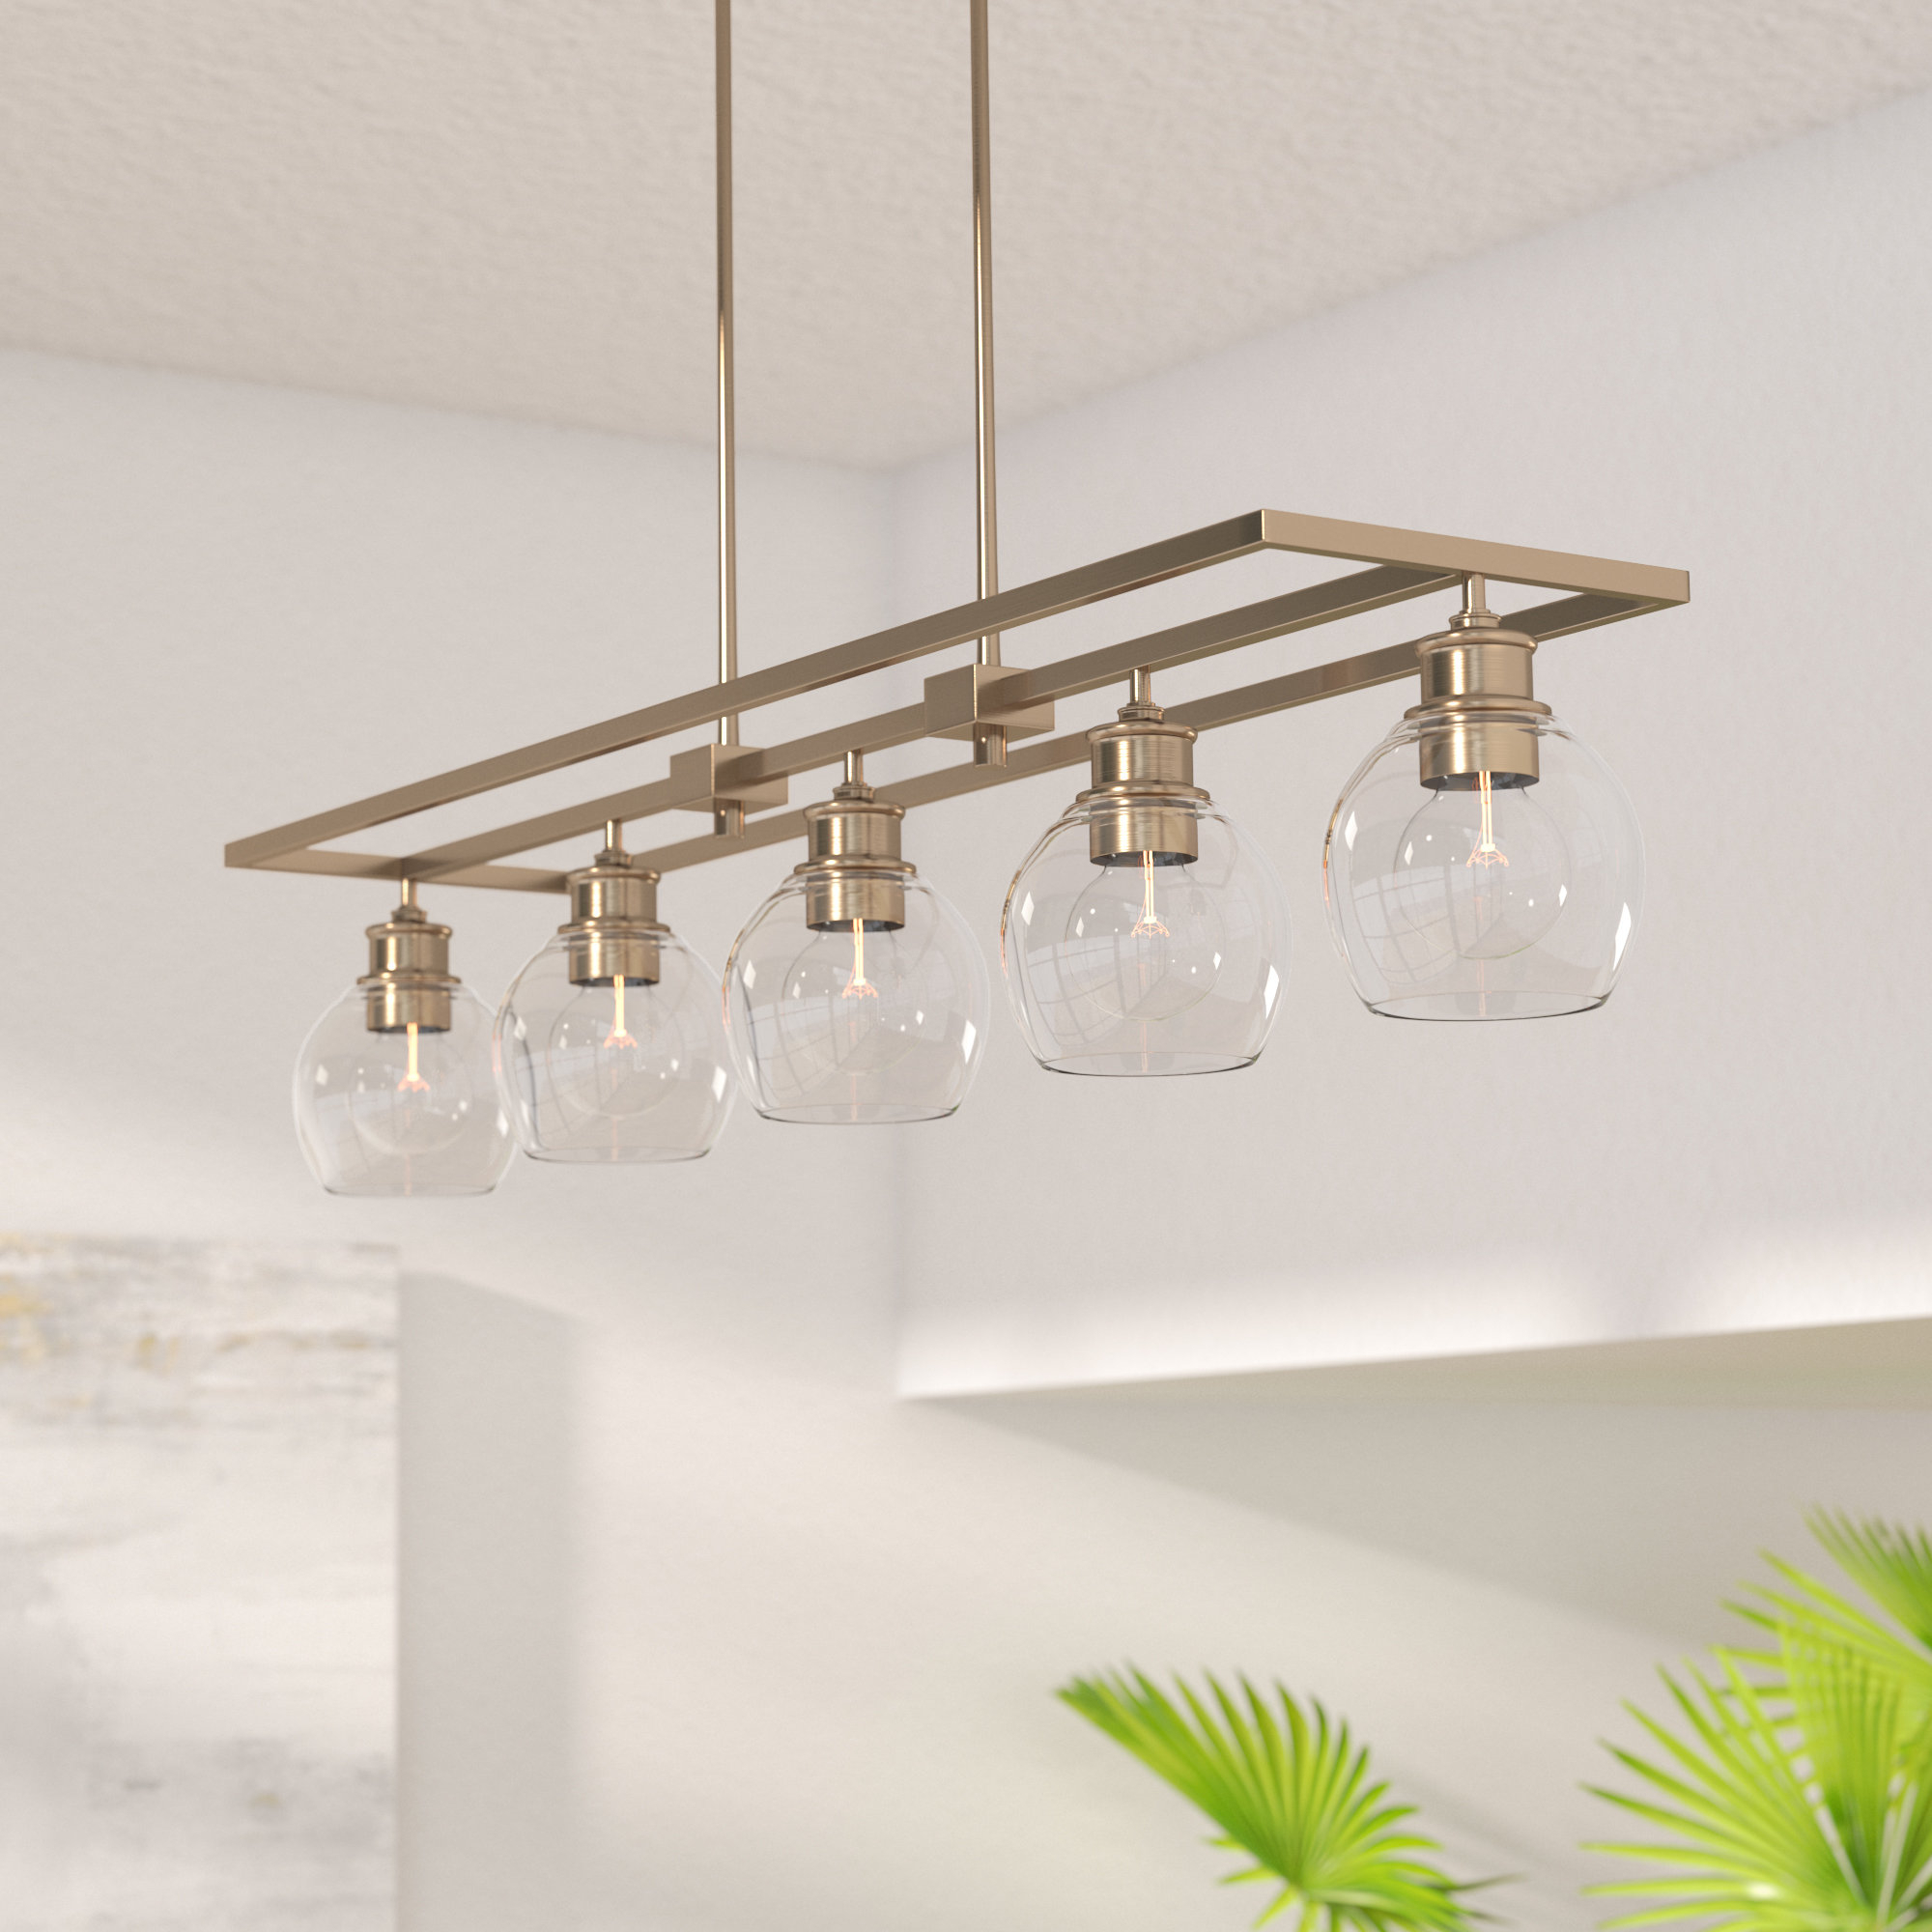 Most Recently Released Bautista 6 Light Kitchen Island Bulb Pendants Pertaining To 4 – 6 Light Kitchen Island Pendant Lighting You'll Love In (View 19 of 20)